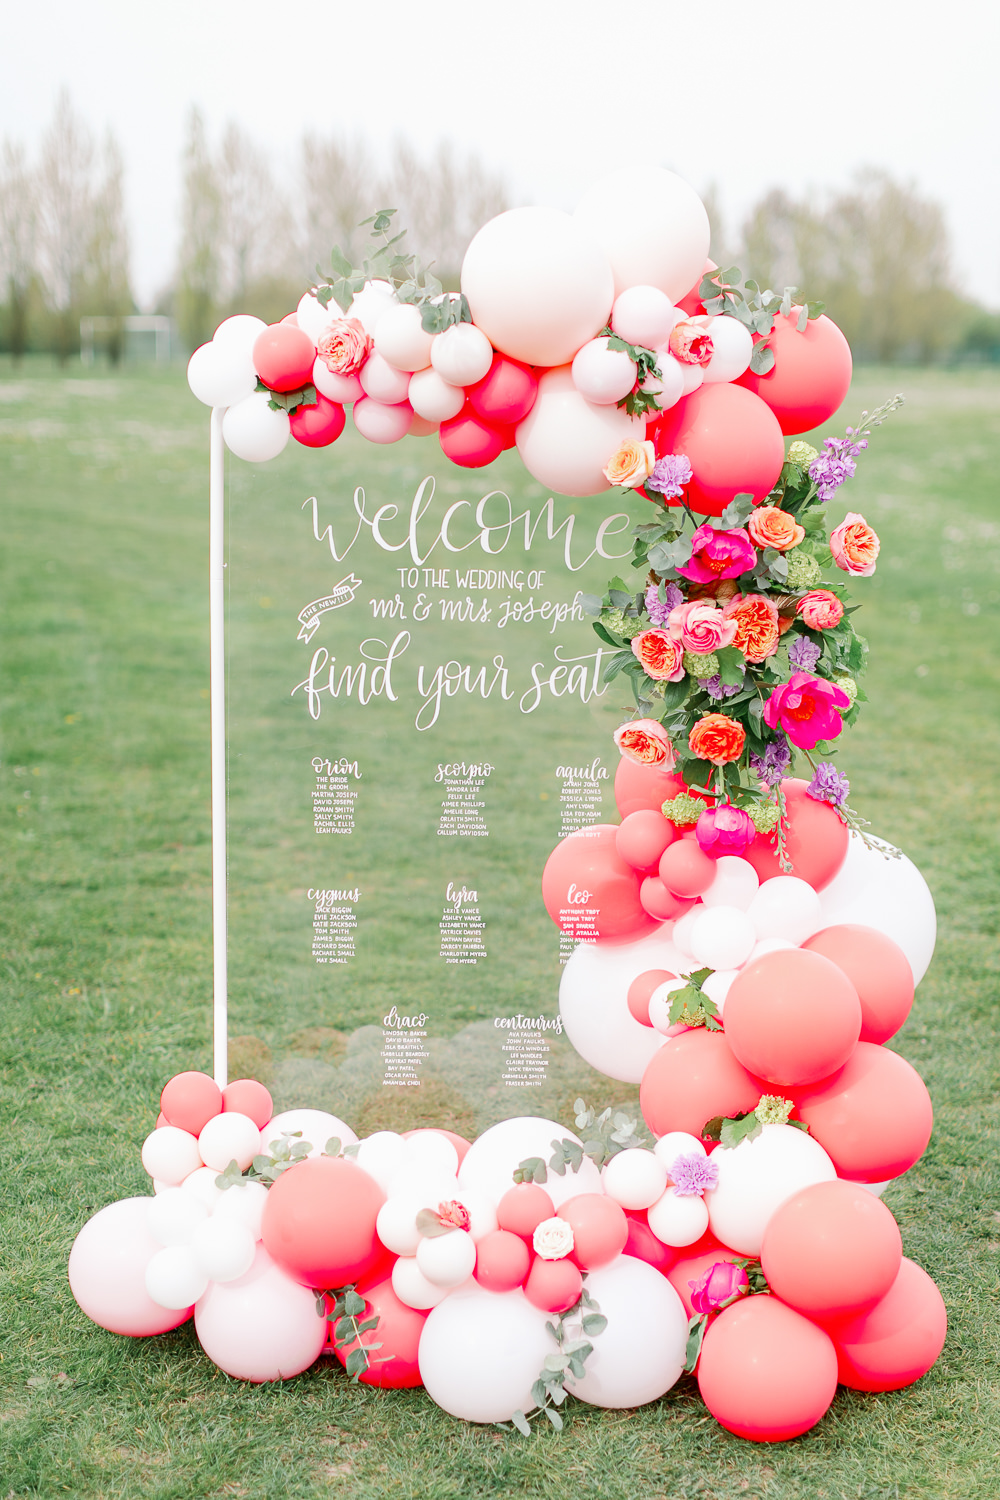 Clear Glass Acrylic Perspex Table Plan Seating Chart Calligraphy Flowers Balloons Coral Peach Wedding Ideas Courtney Dee Photography